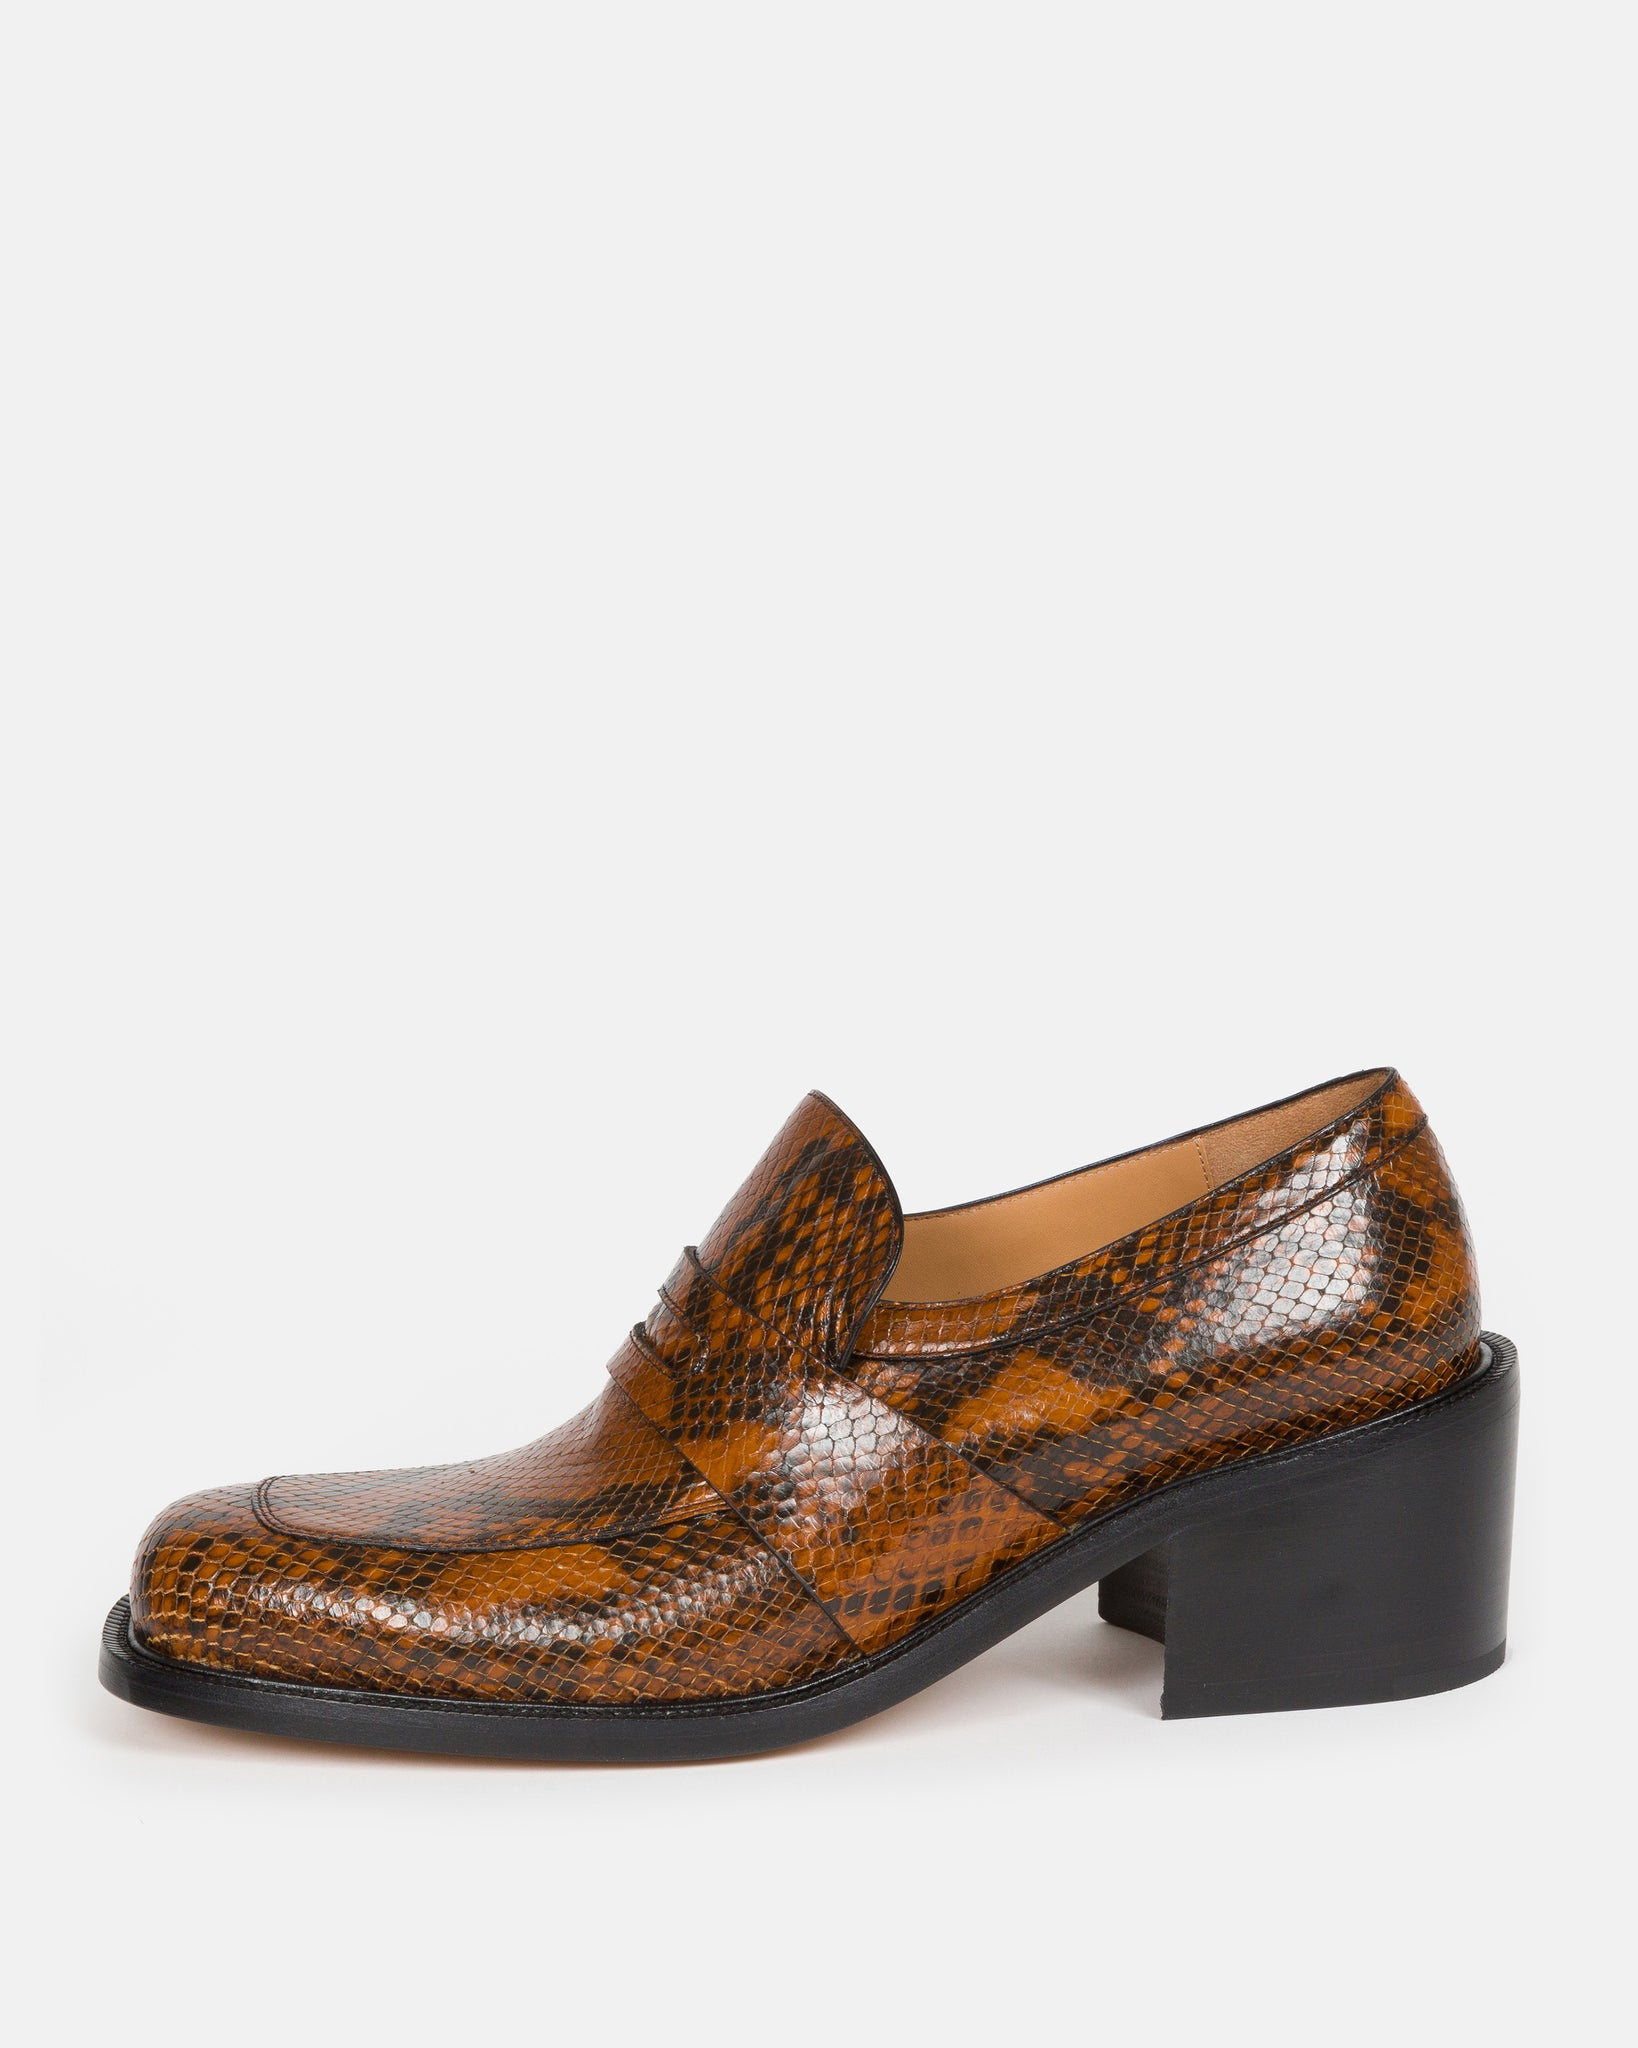 MW28/042 penny loafers